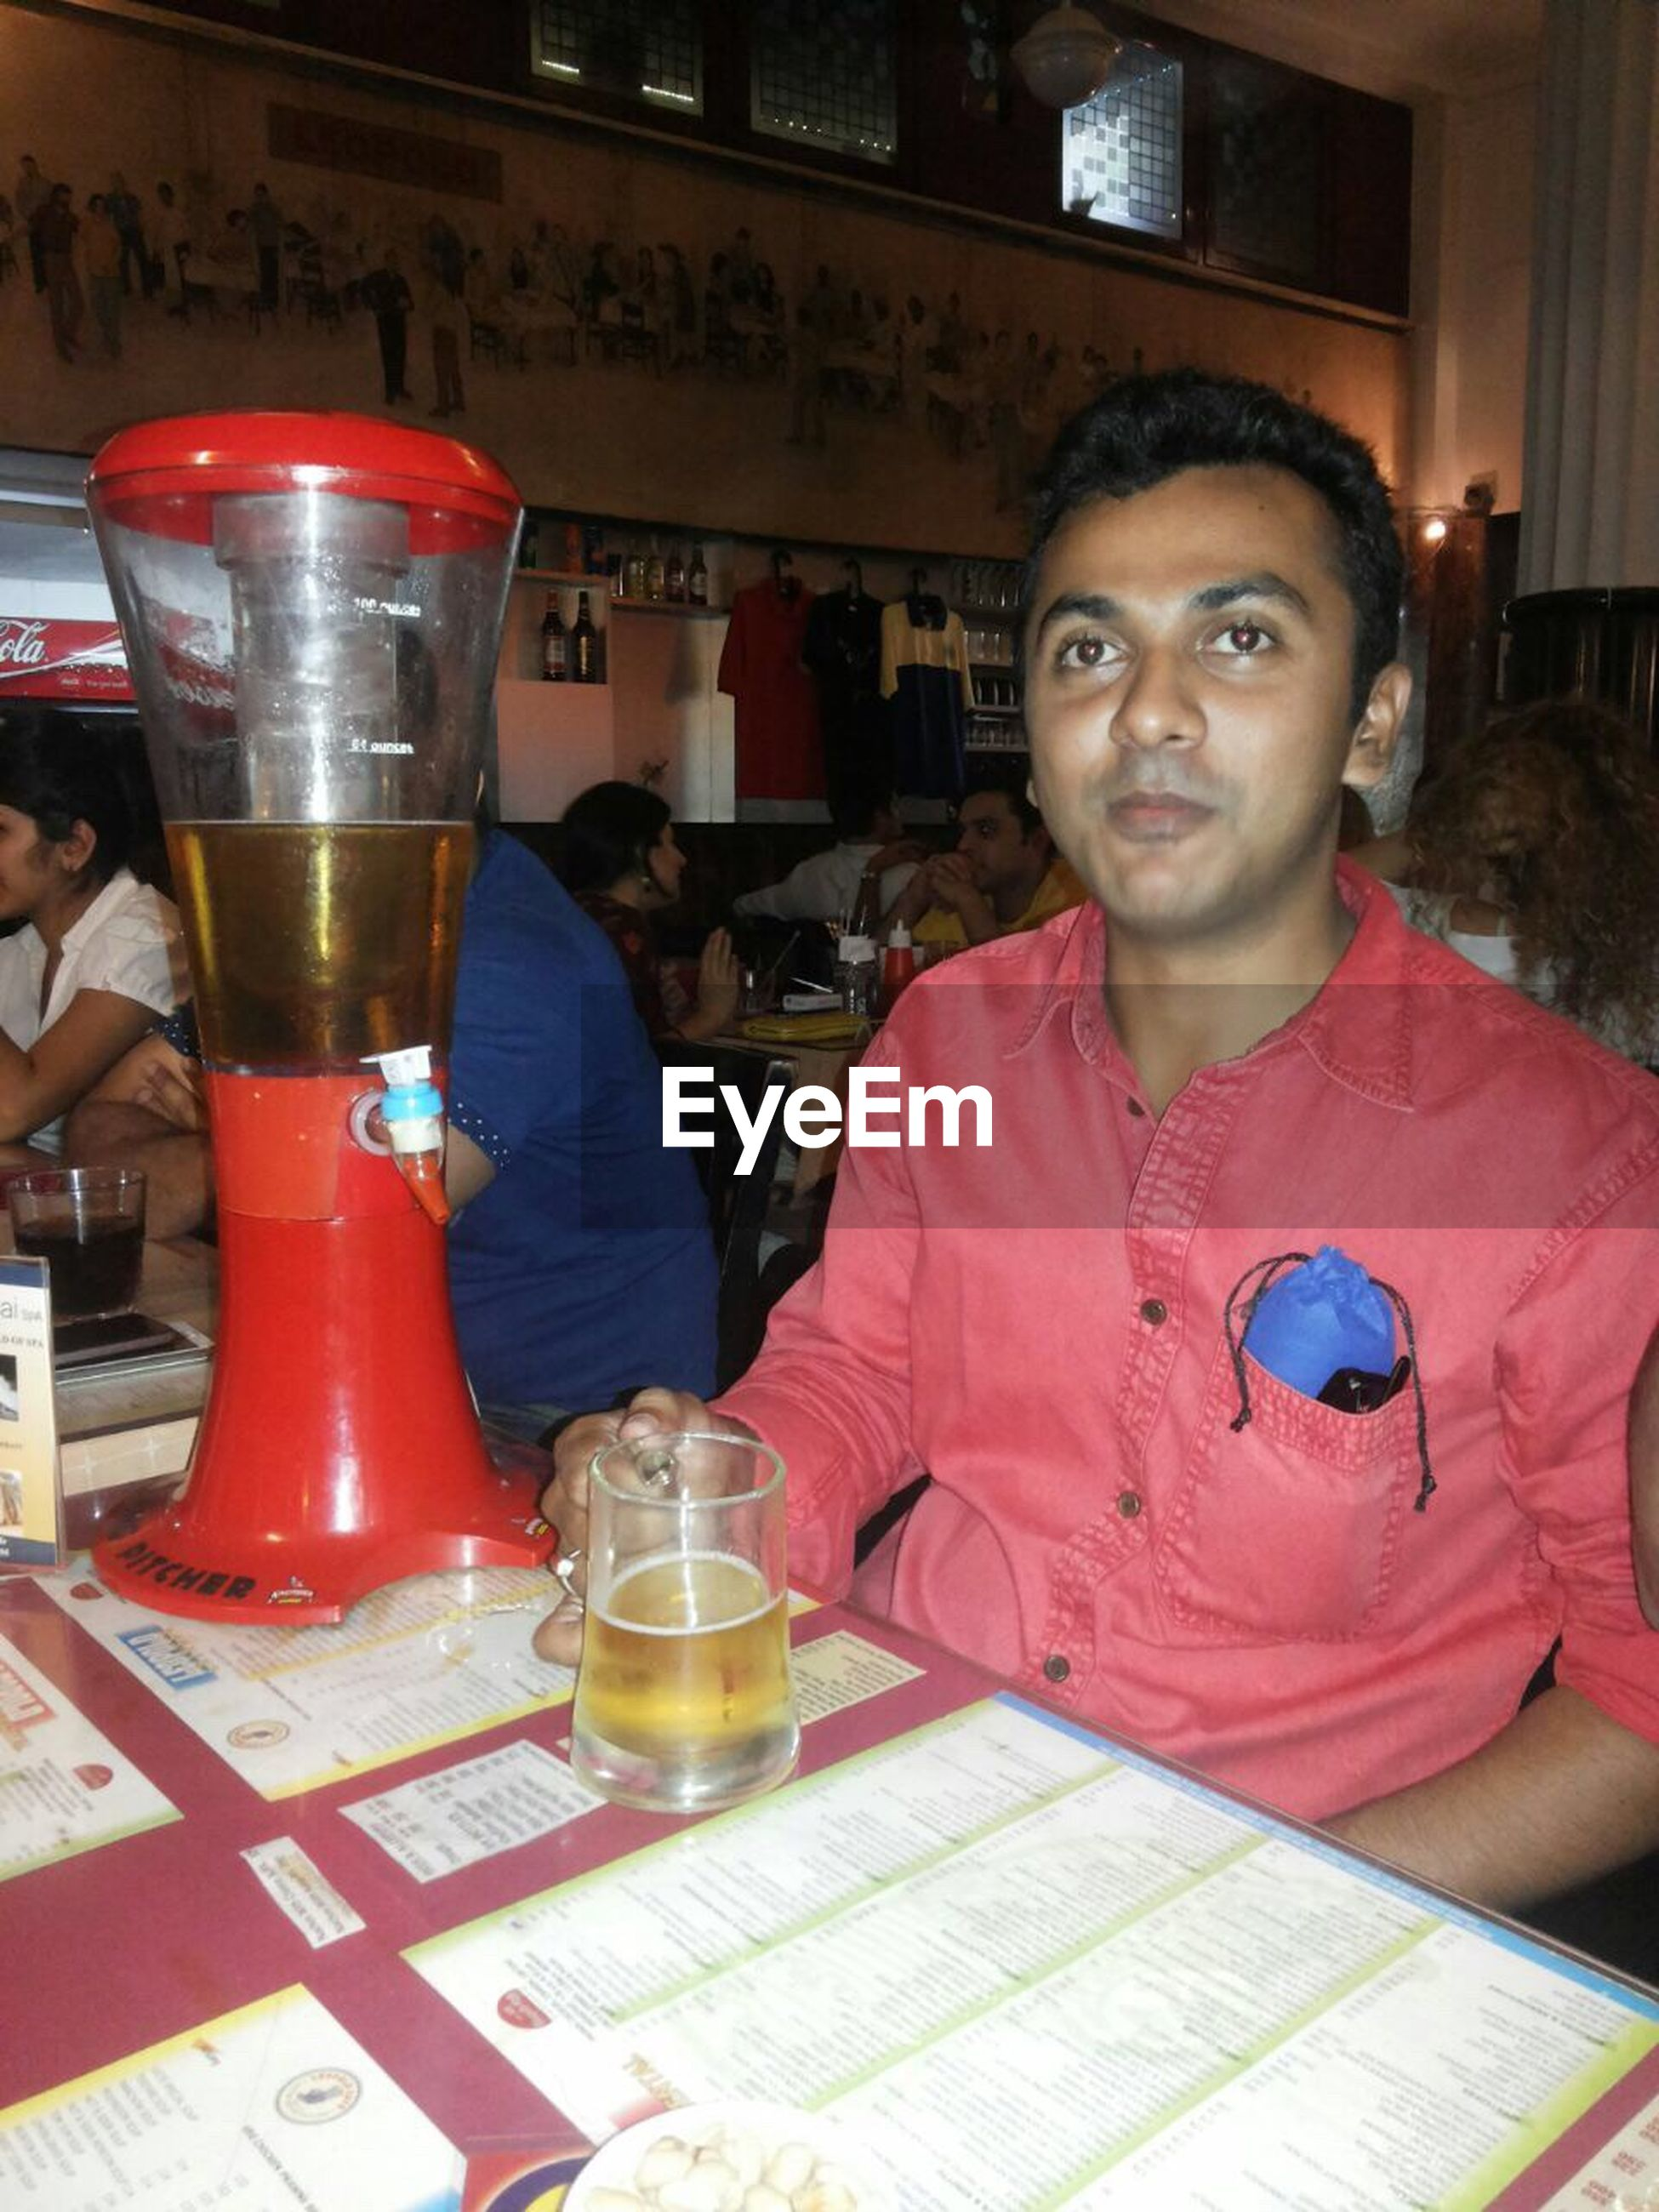 indoors, drink, lifestyles, food and drink, casual clothing, table, leisure activity, person, refreshment, sitting, restaurant, looking at camera, front view, portrait, smiling, glass - material, drinking glass